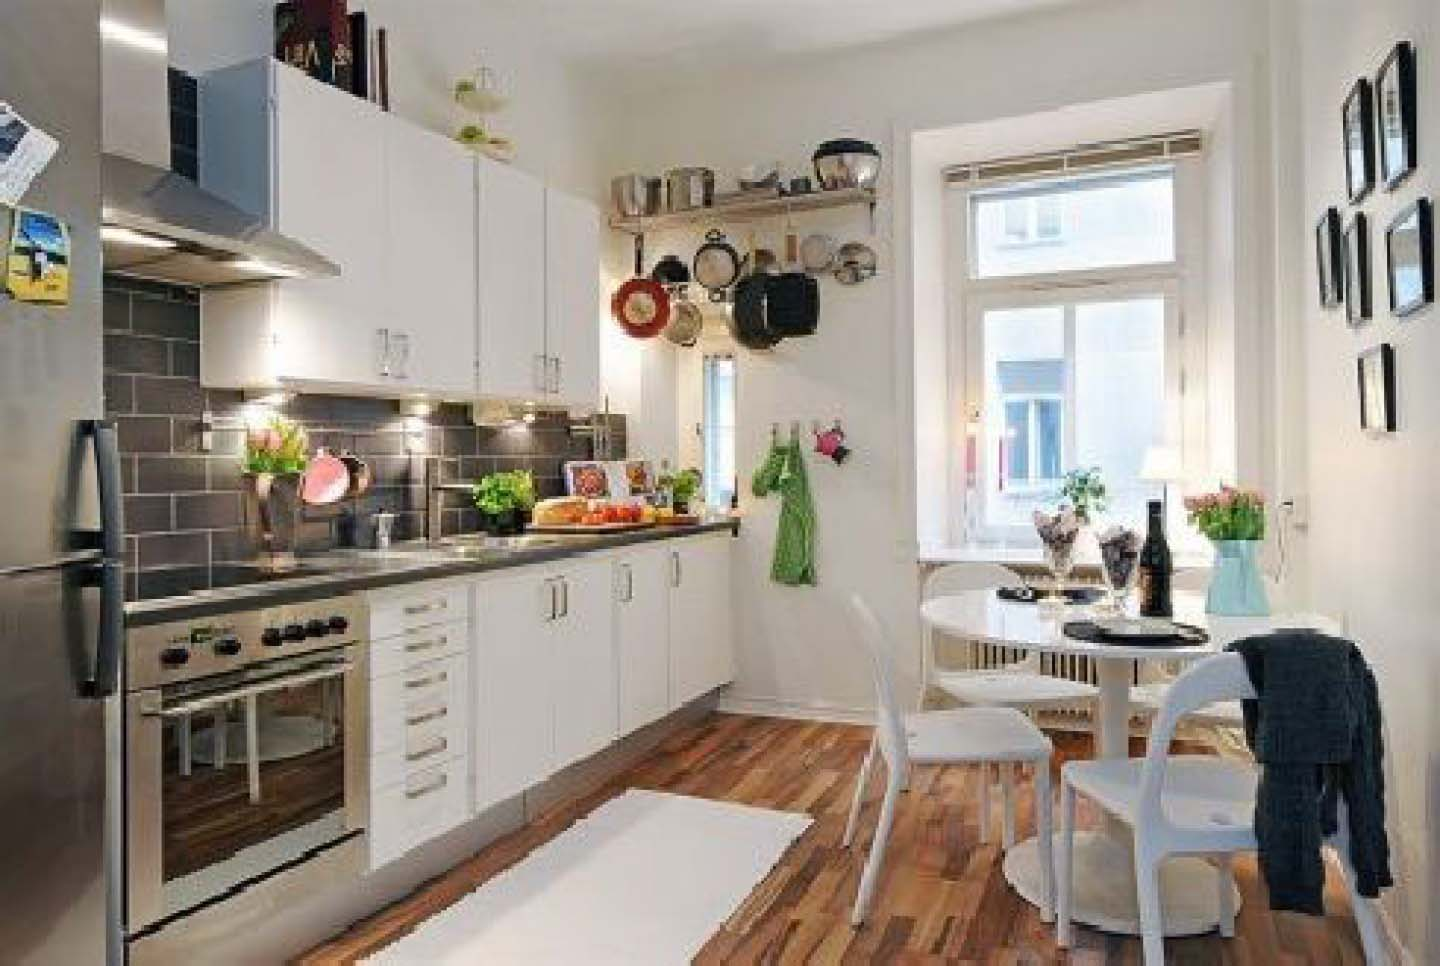 Best kitchen designs 2013 for Tiny apartment kitchen solutions